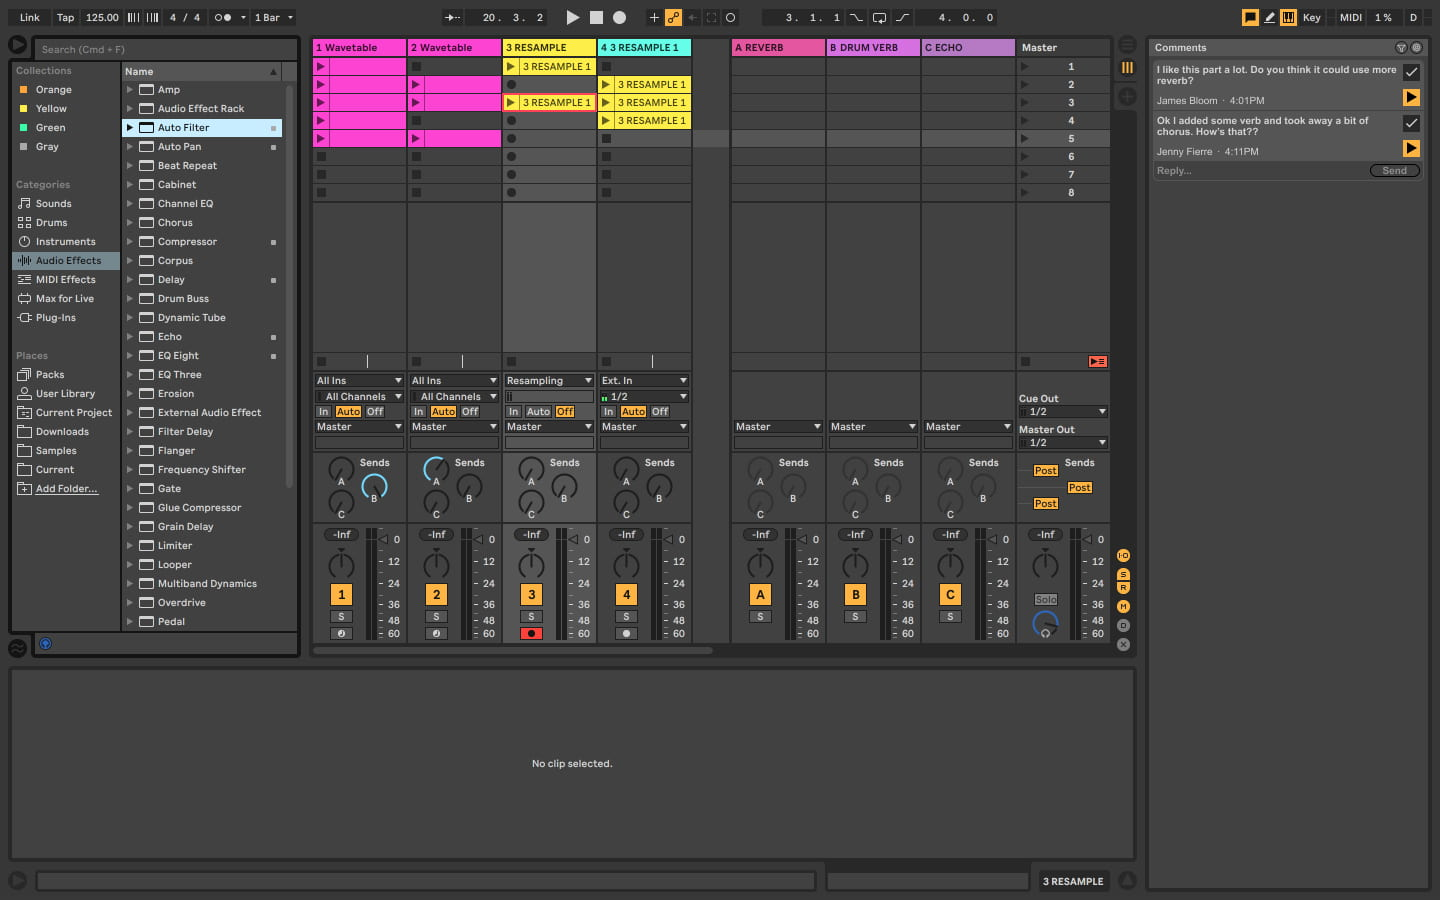 User interface of Ableton Live with potential collaborative features